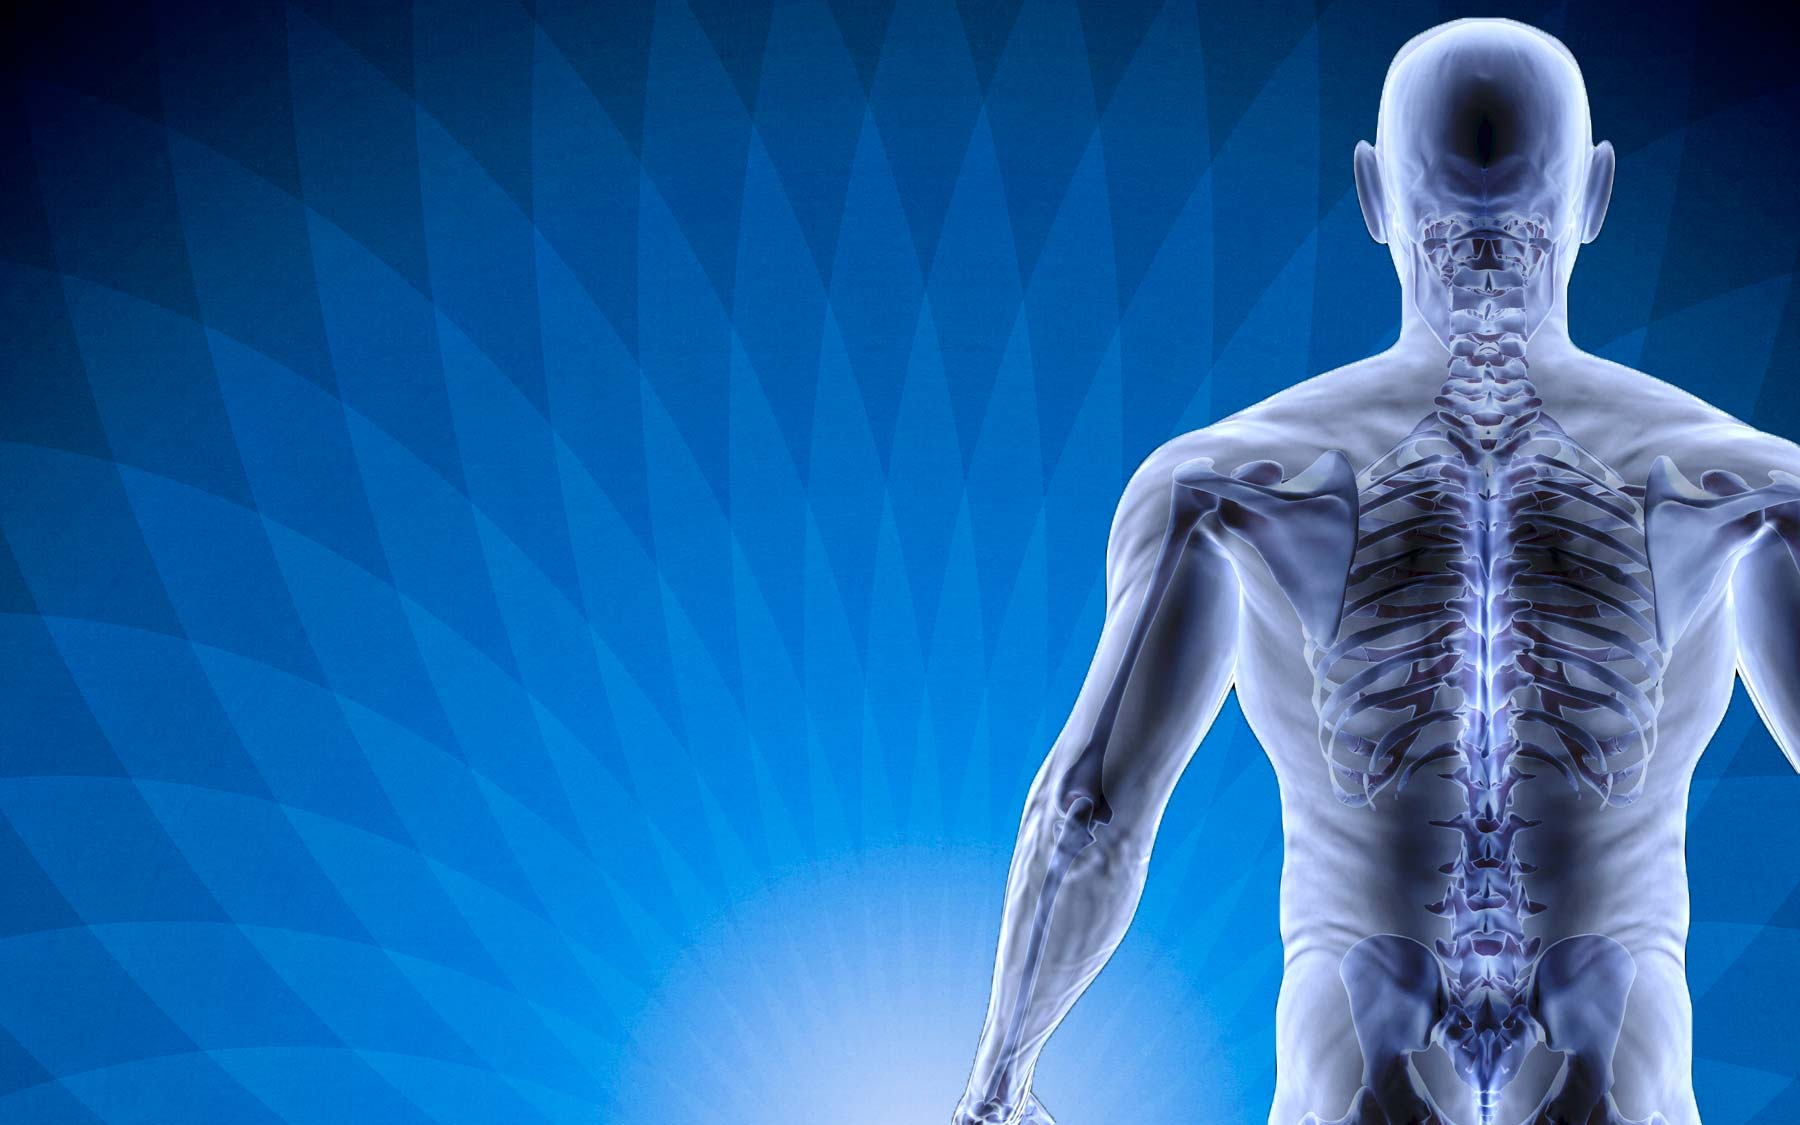 Chiropractor Or Osteopath >> Chiropractors, Physiotherapists and Ostepaths - Henley Practice